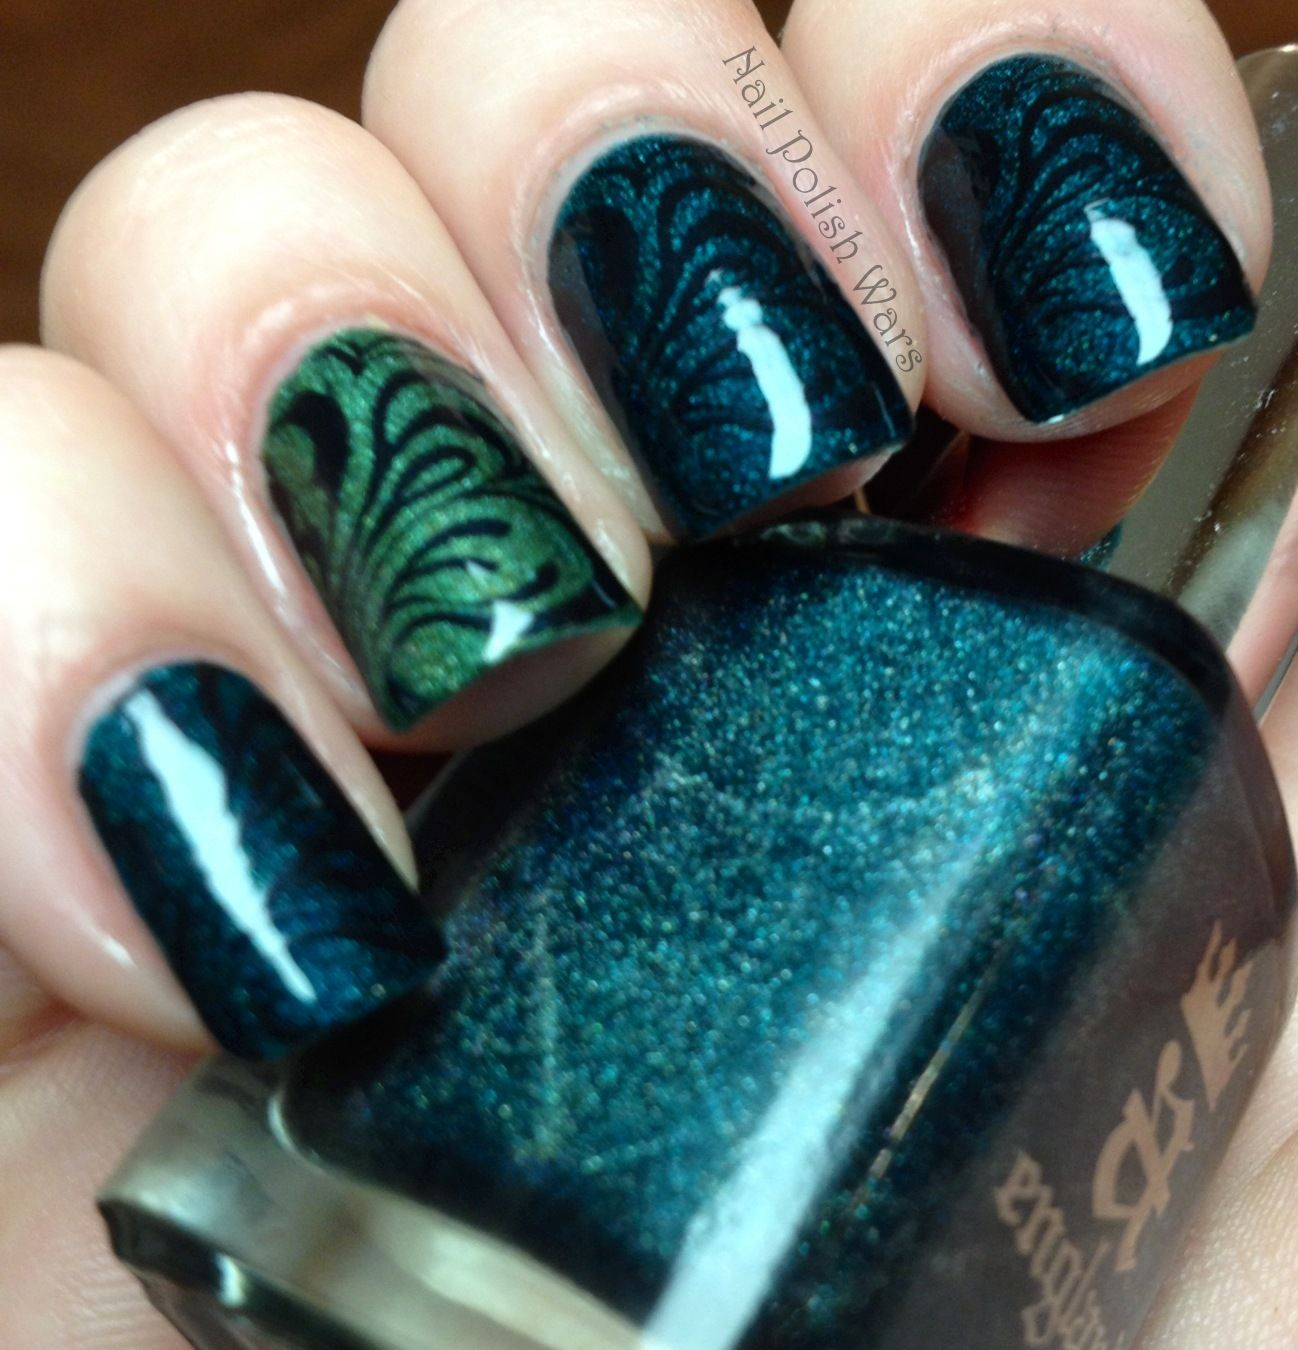 Dark Turquoise Green And Black Swirls Of Nail Polish